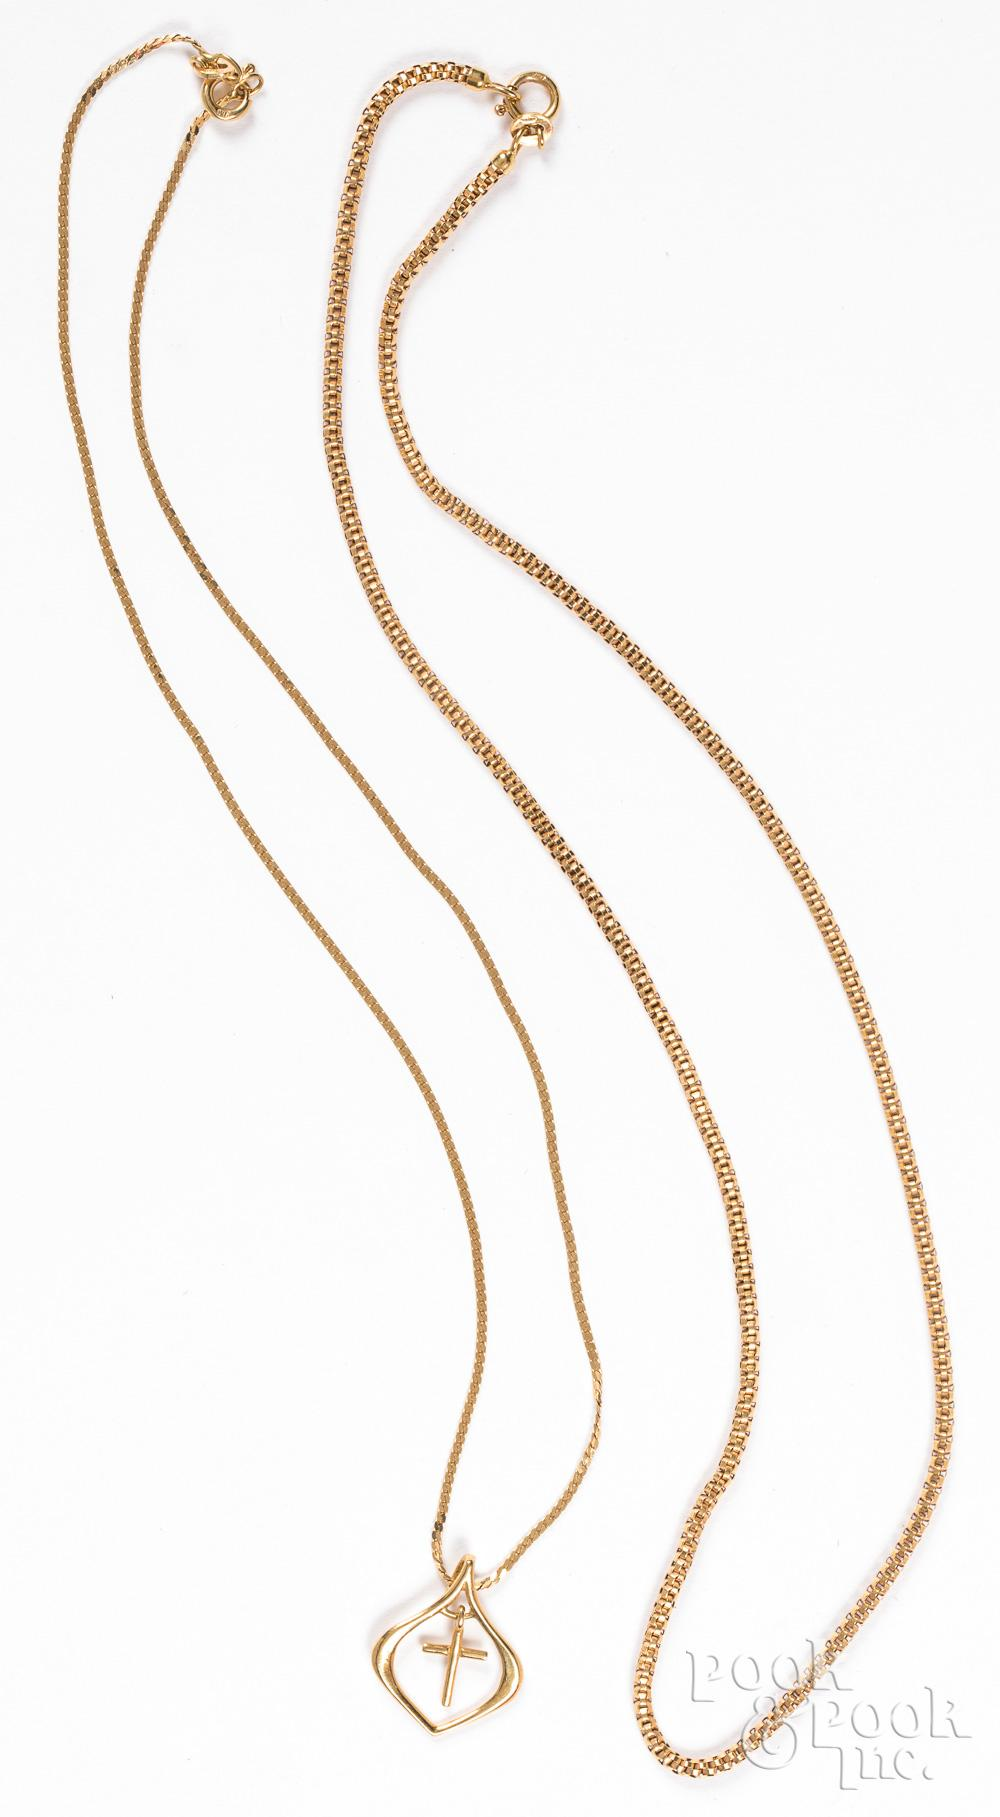 Two 18K gold necklaces, 7.3dwt.